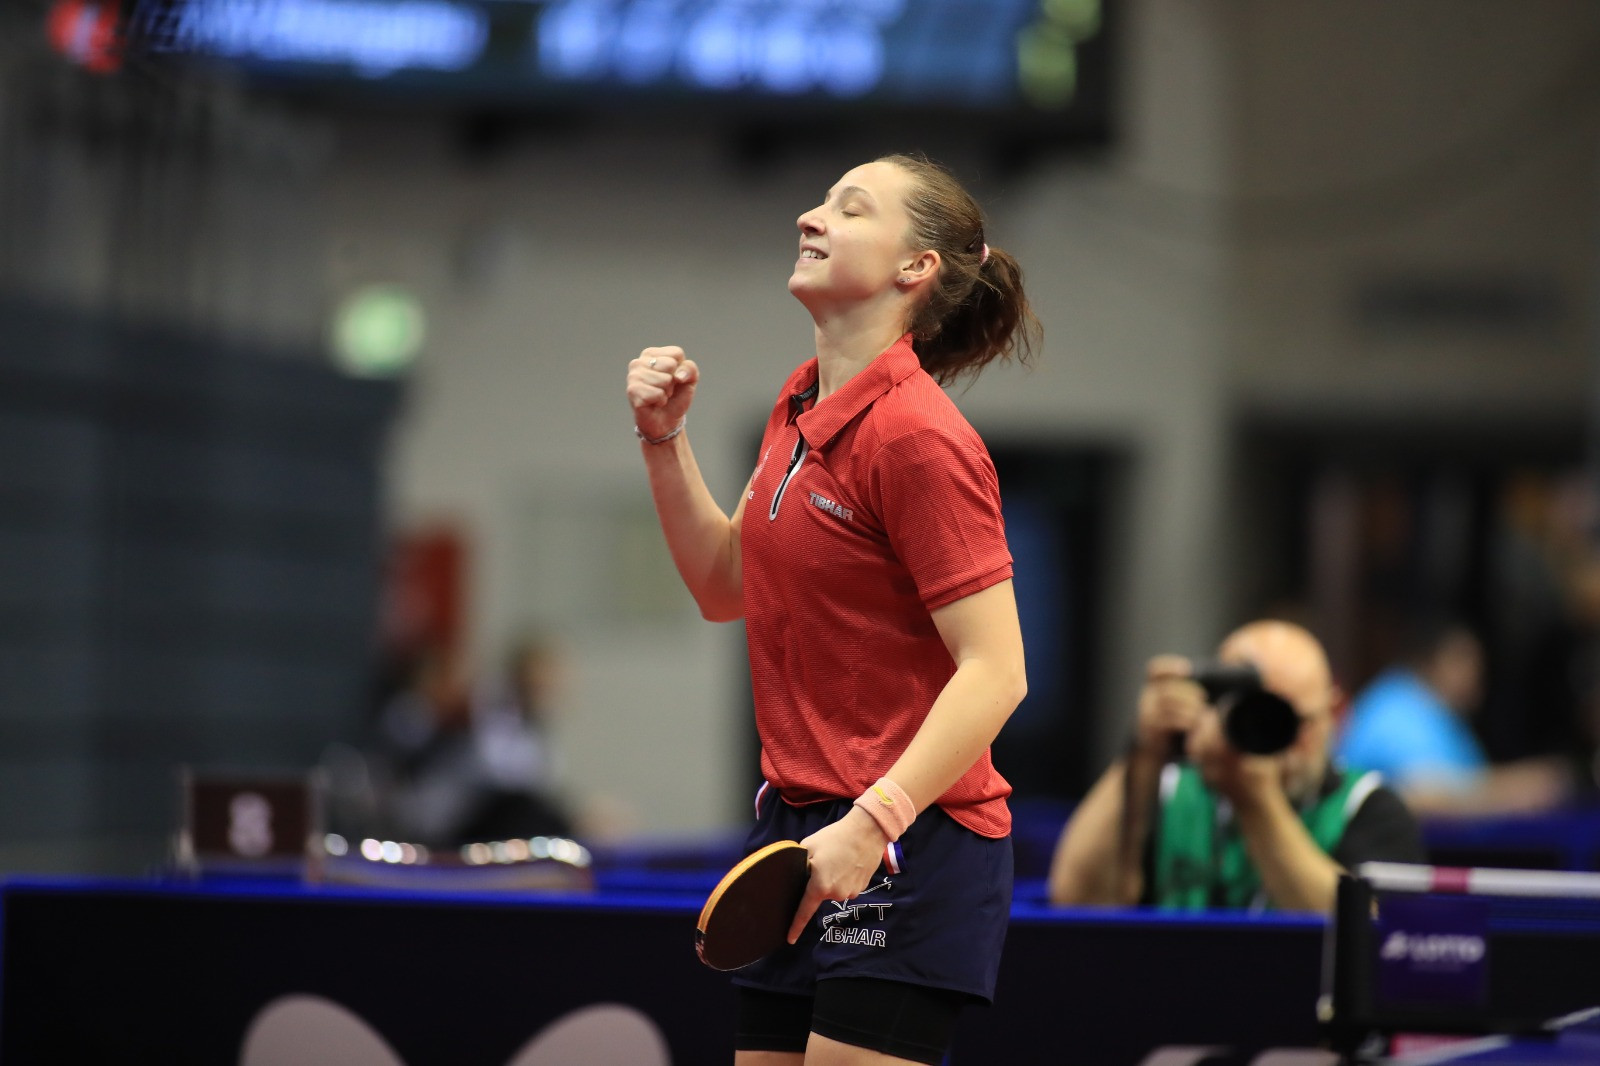 Stephanie Loeuillette of France defeated the world number 19, Bernadette Szocs of Romania, at the ITTF German Open ©ITTF